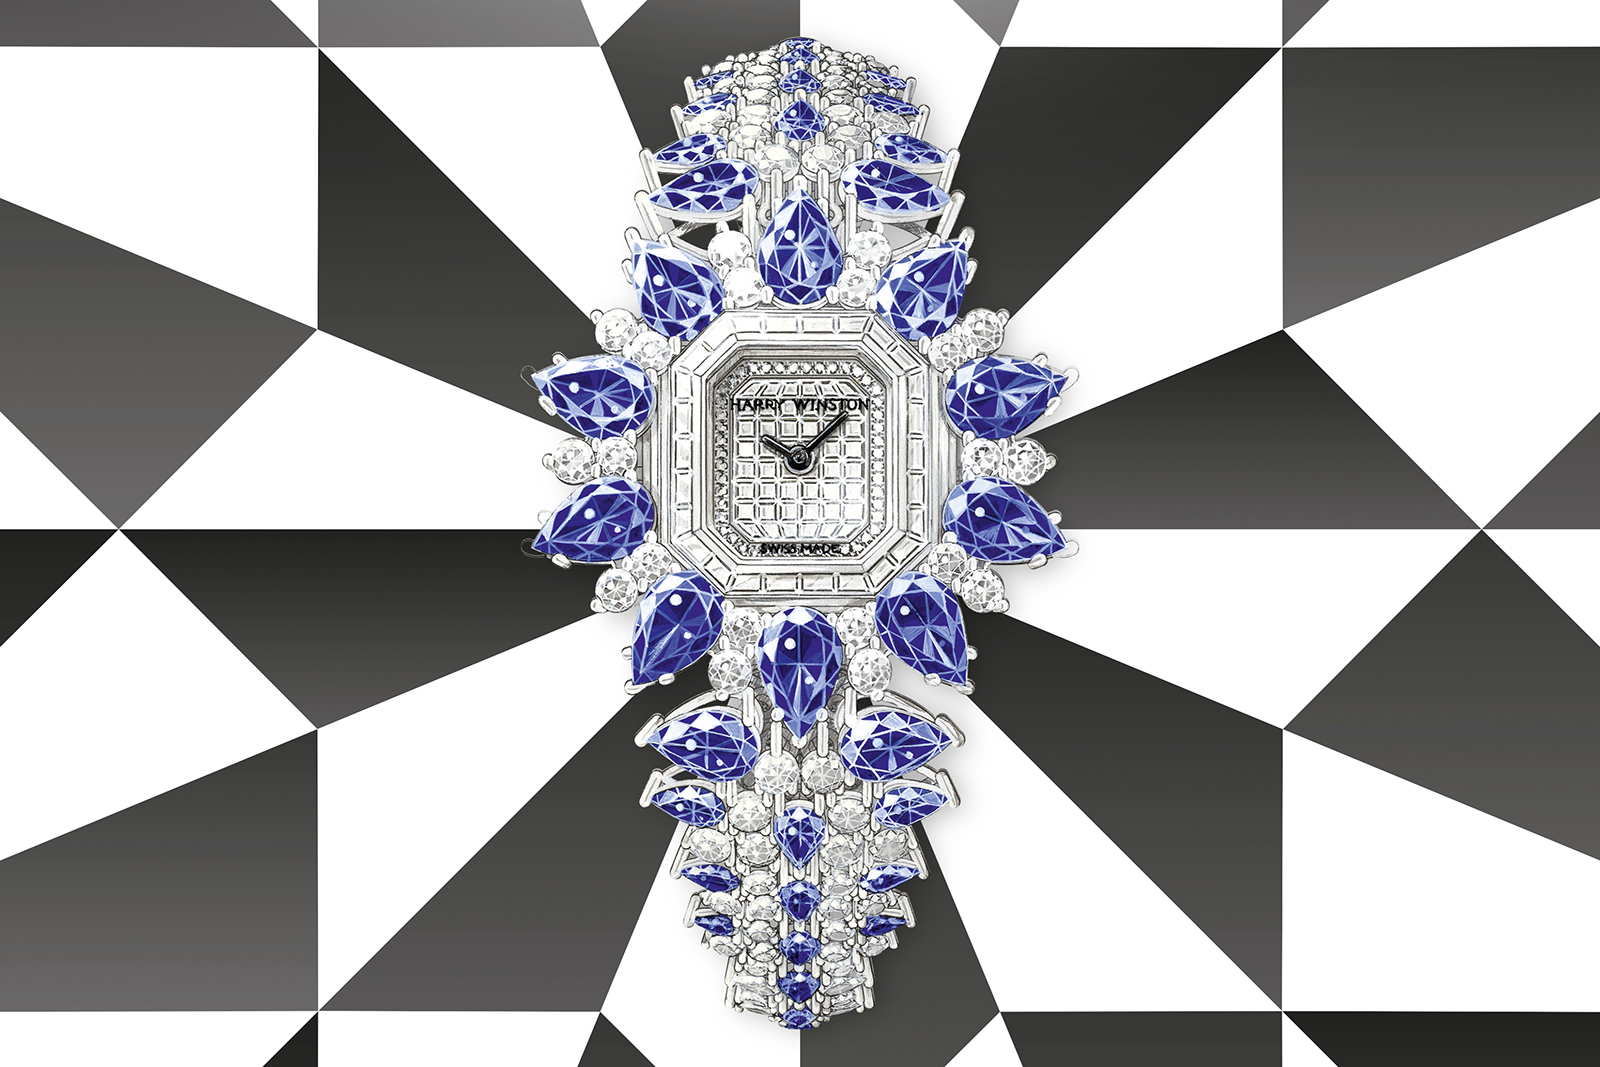 'Ultimate Marble Marquetry' by Harry Winston